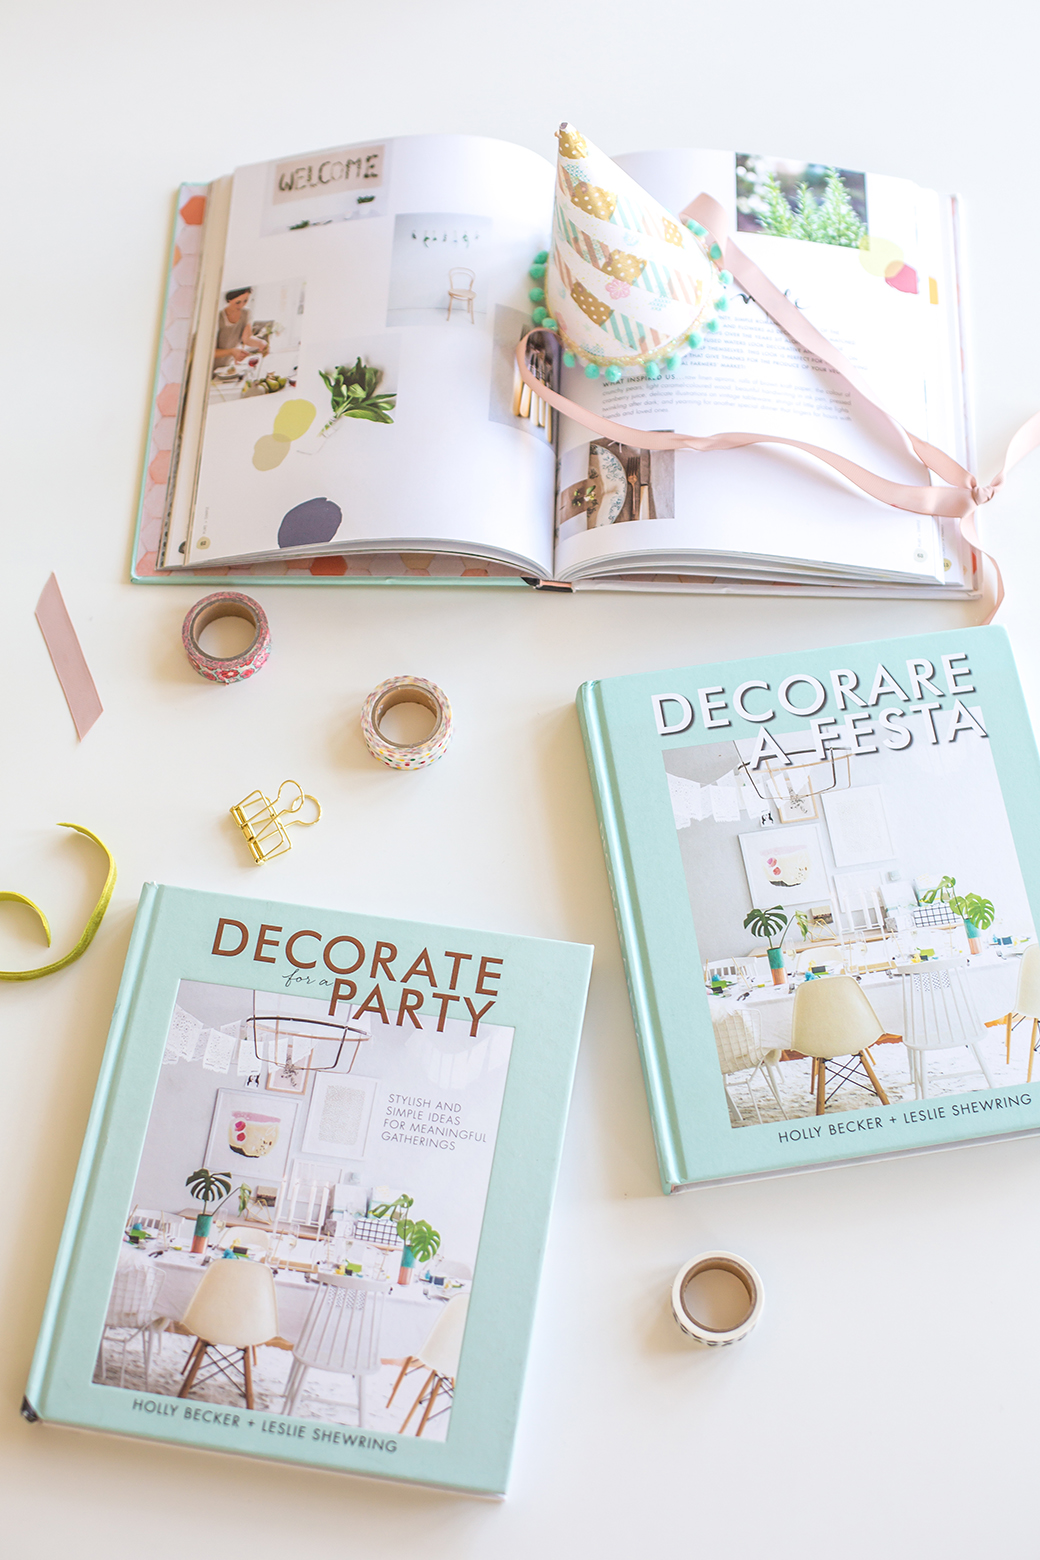 DecorareafestaBOOKweb2.jpg